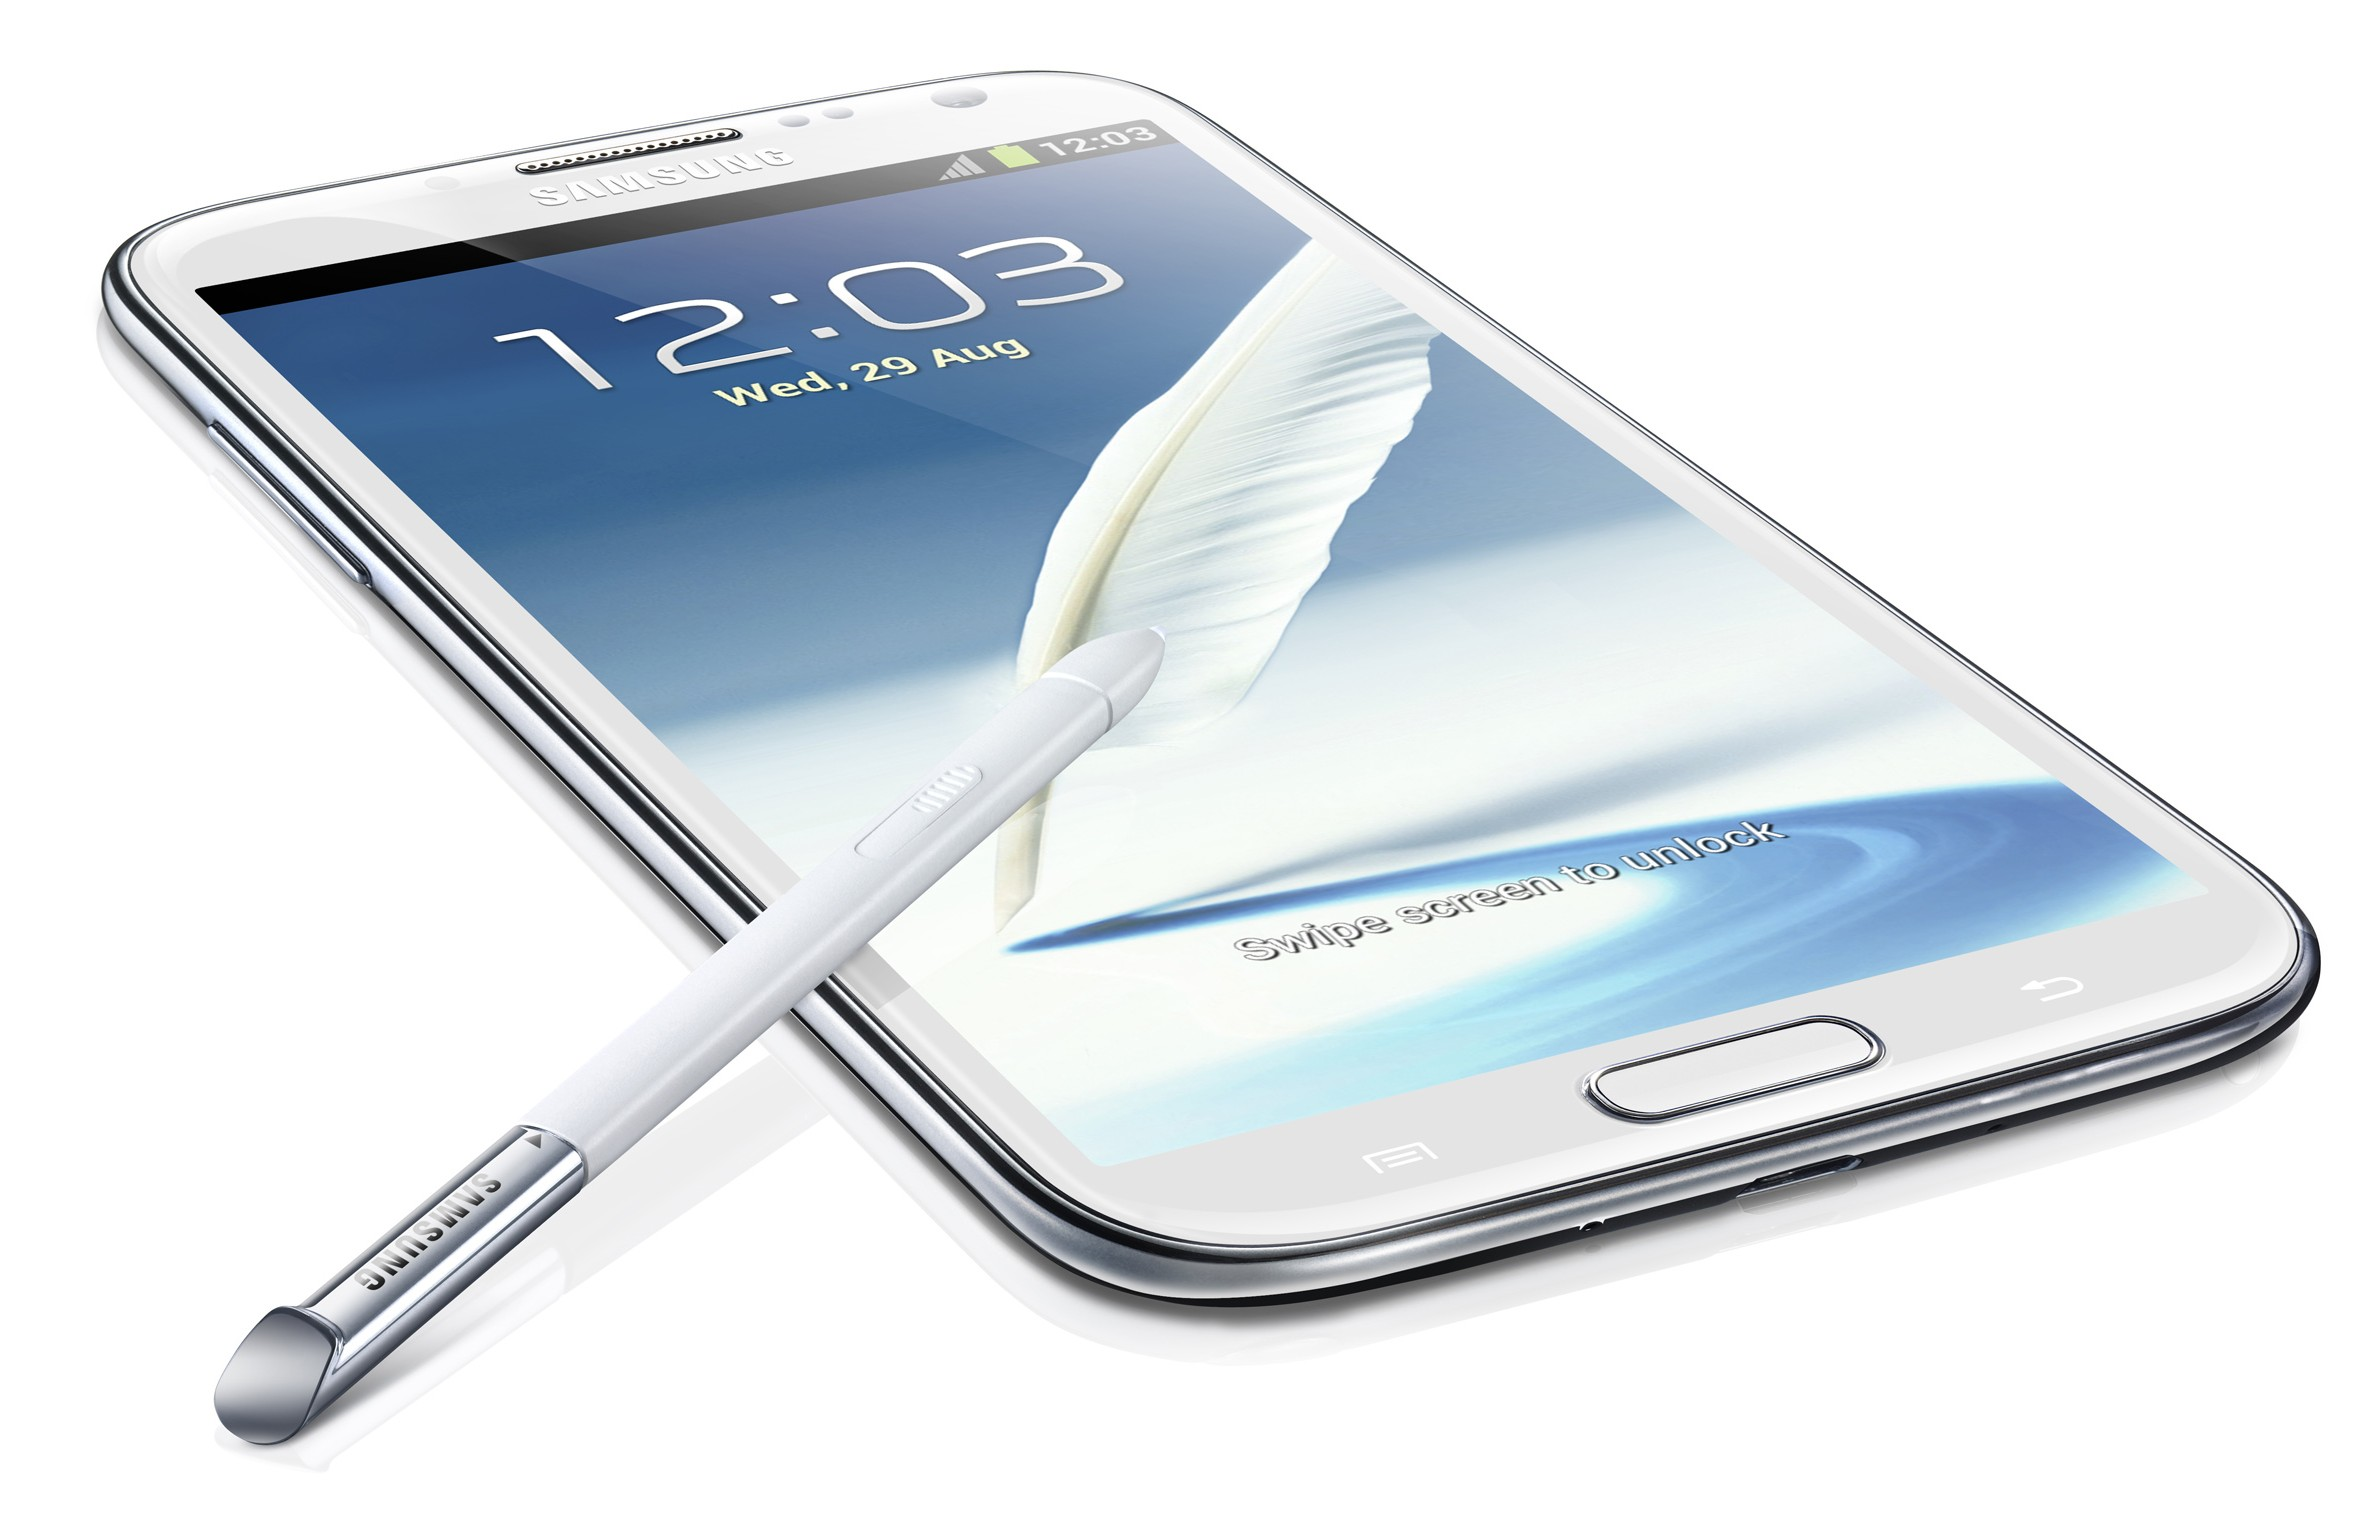 GALAXY Note II Product Image 4 e1346260505345